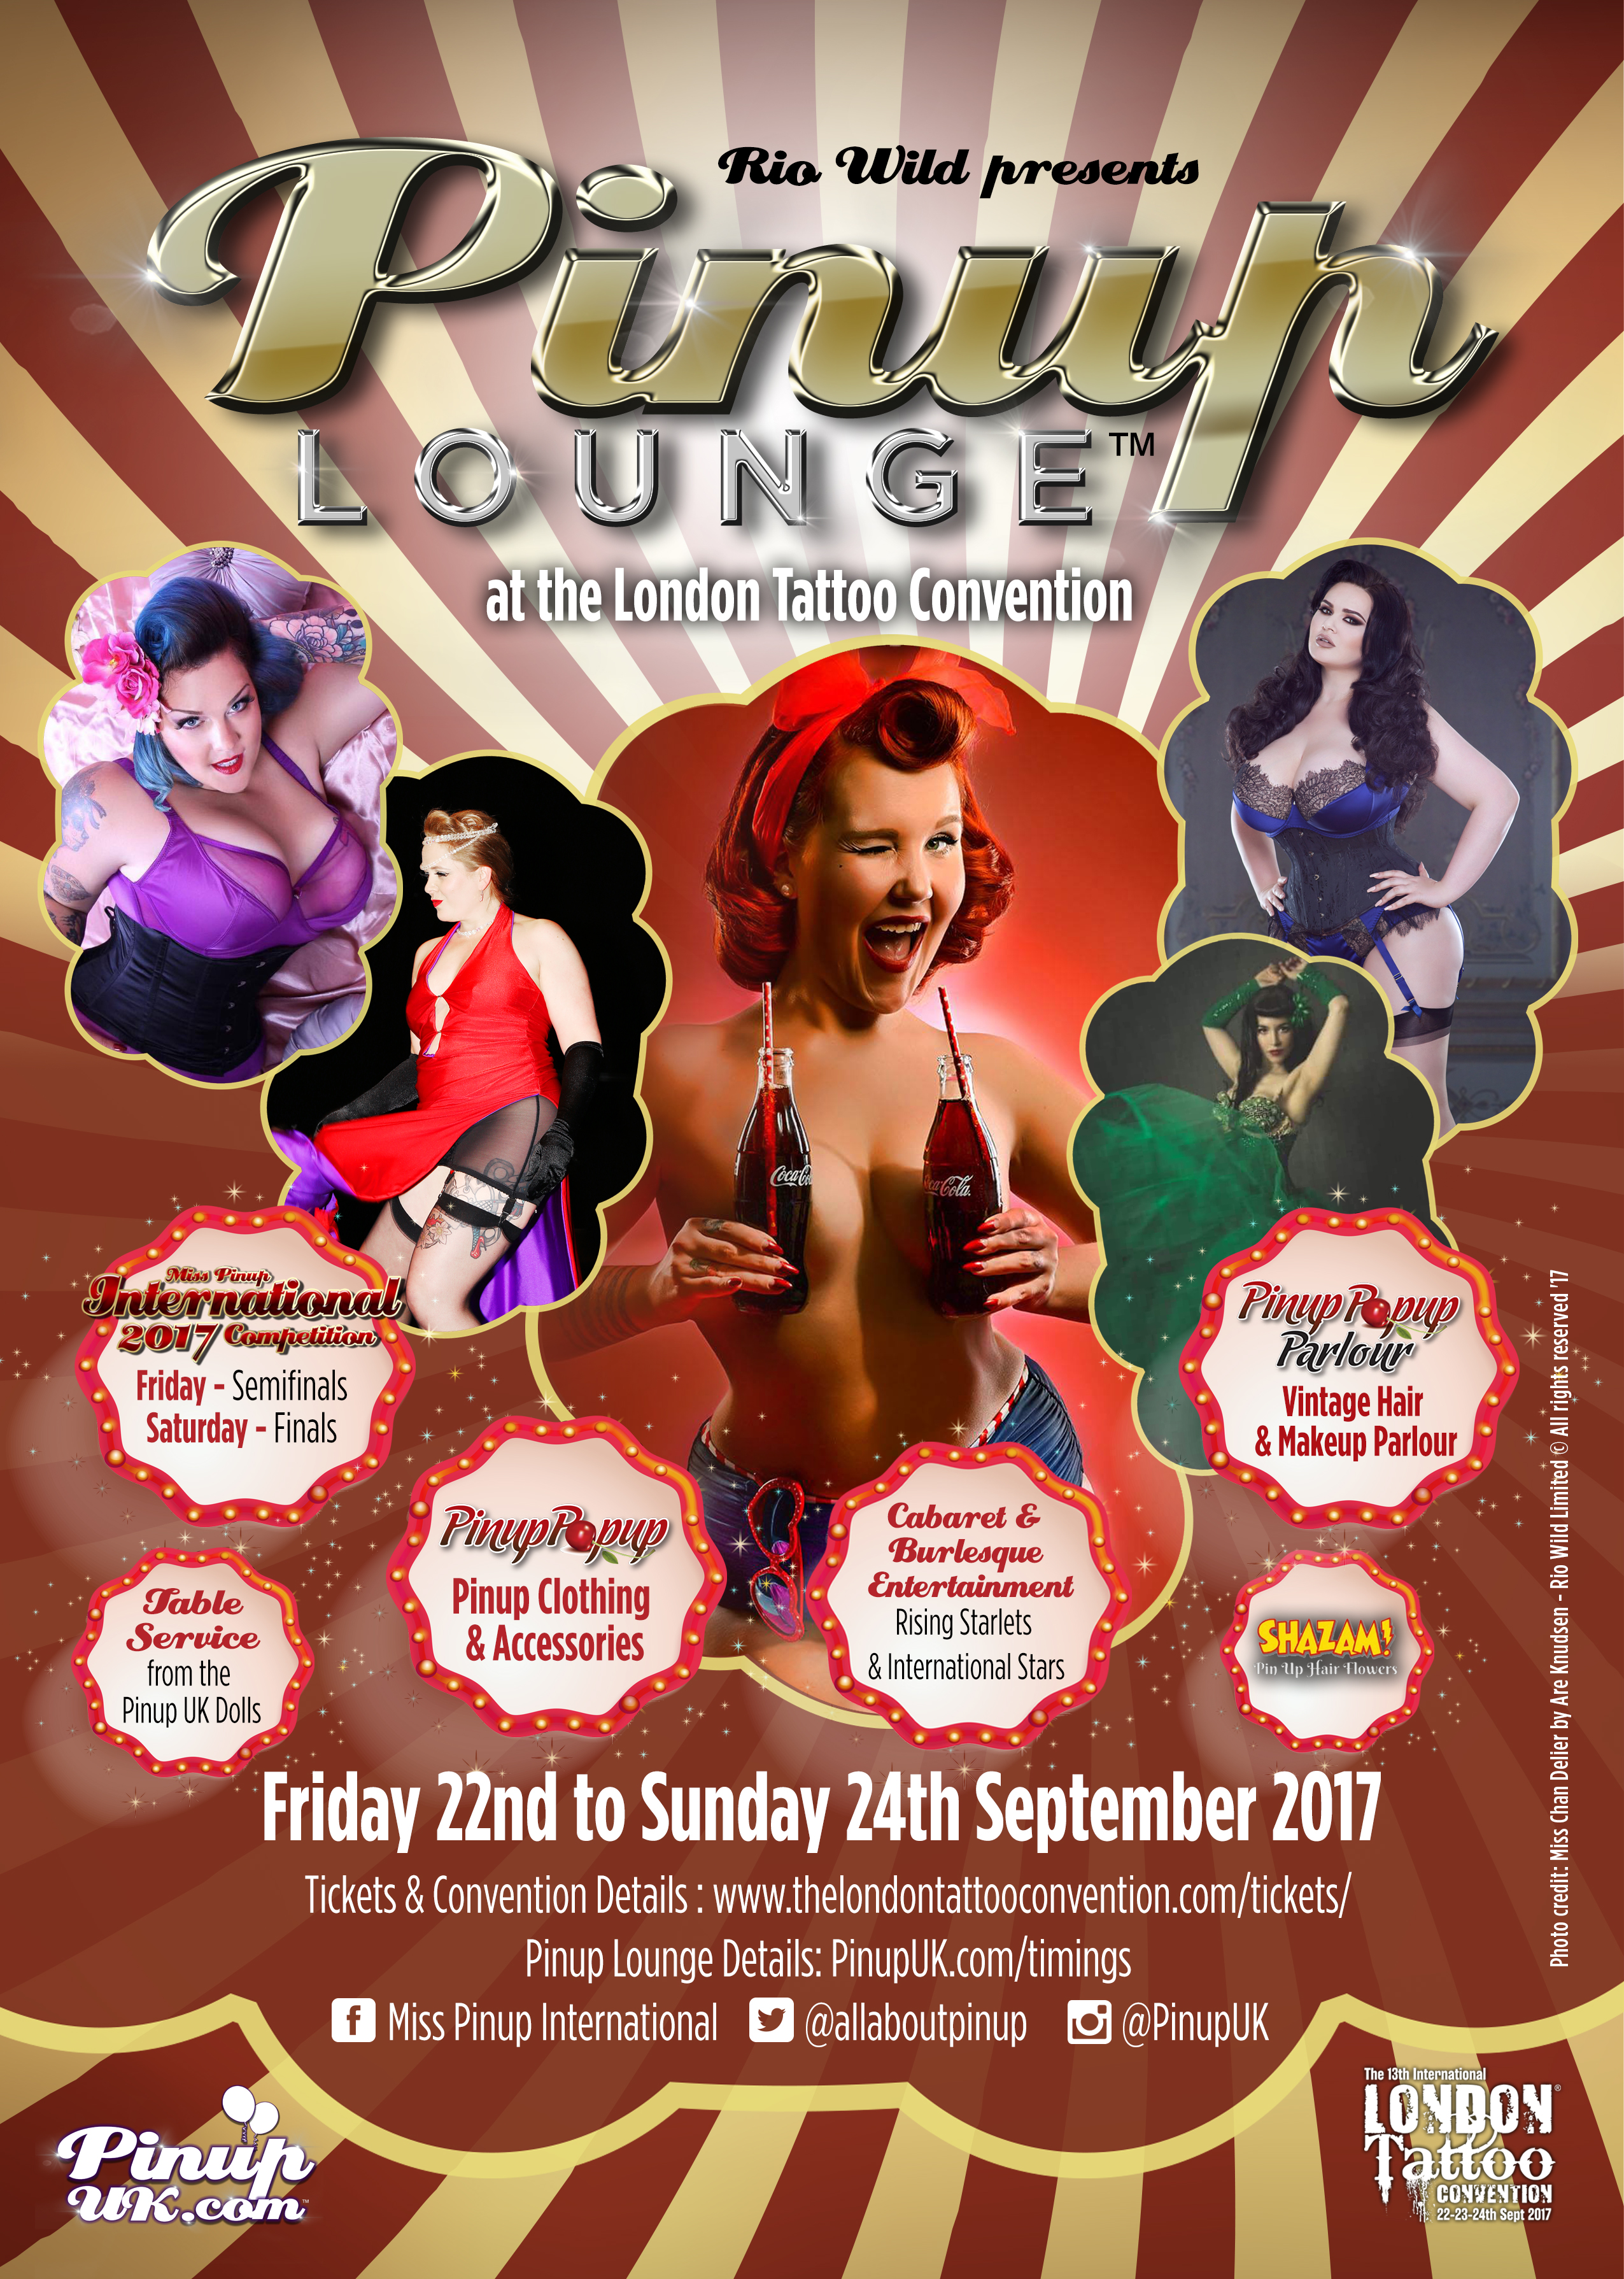 Miss Pinup International Pinup contest Pinup competition Pinup Lounge London Tattoo Convention Pinup UK AllAboutPinup Pinup Stage Pin Up